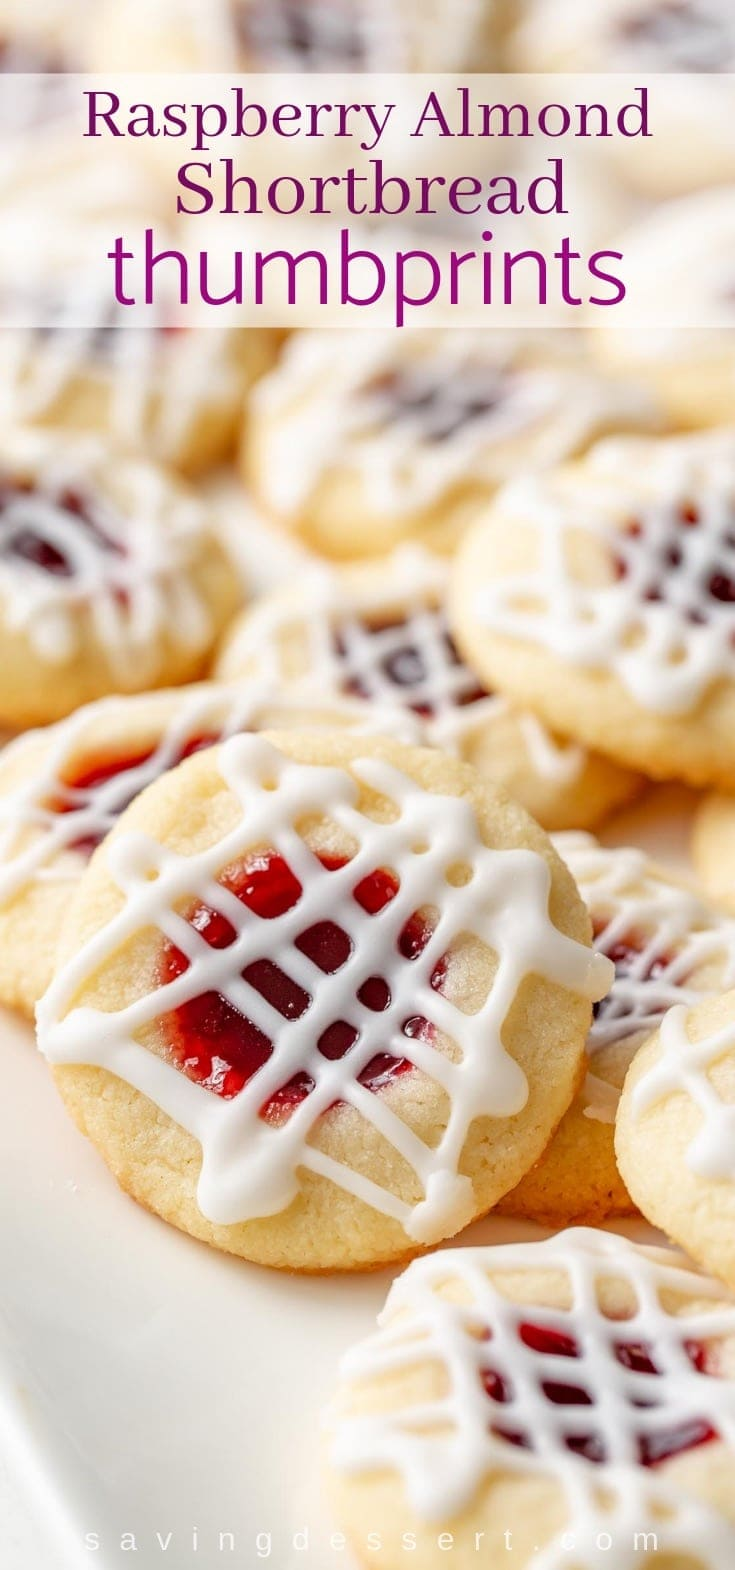 A plate of Raspberry Almond Shortbread Thumbprint Cookies with a drizzle of almond icing